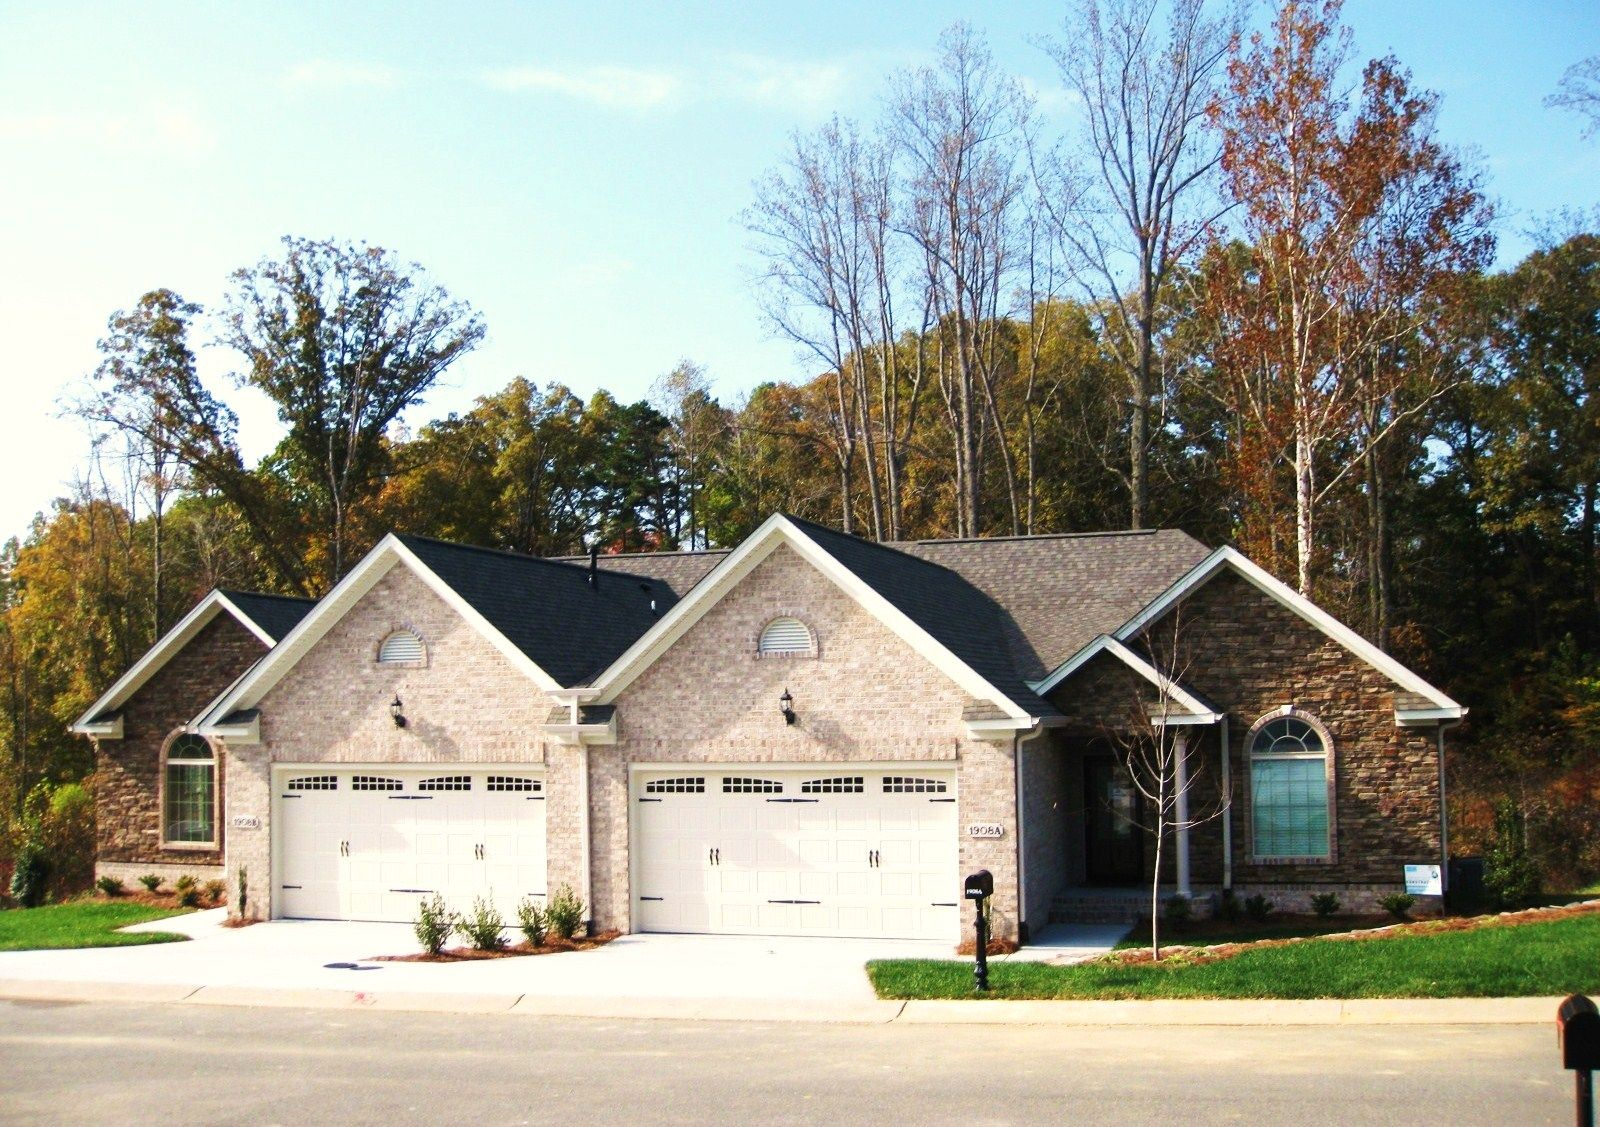 hindu singles in whitsett Official cheap whitsett apartments for rent from $700 see floorplans, pictures, prices & info for available cheap apartments in whitsett, nc.